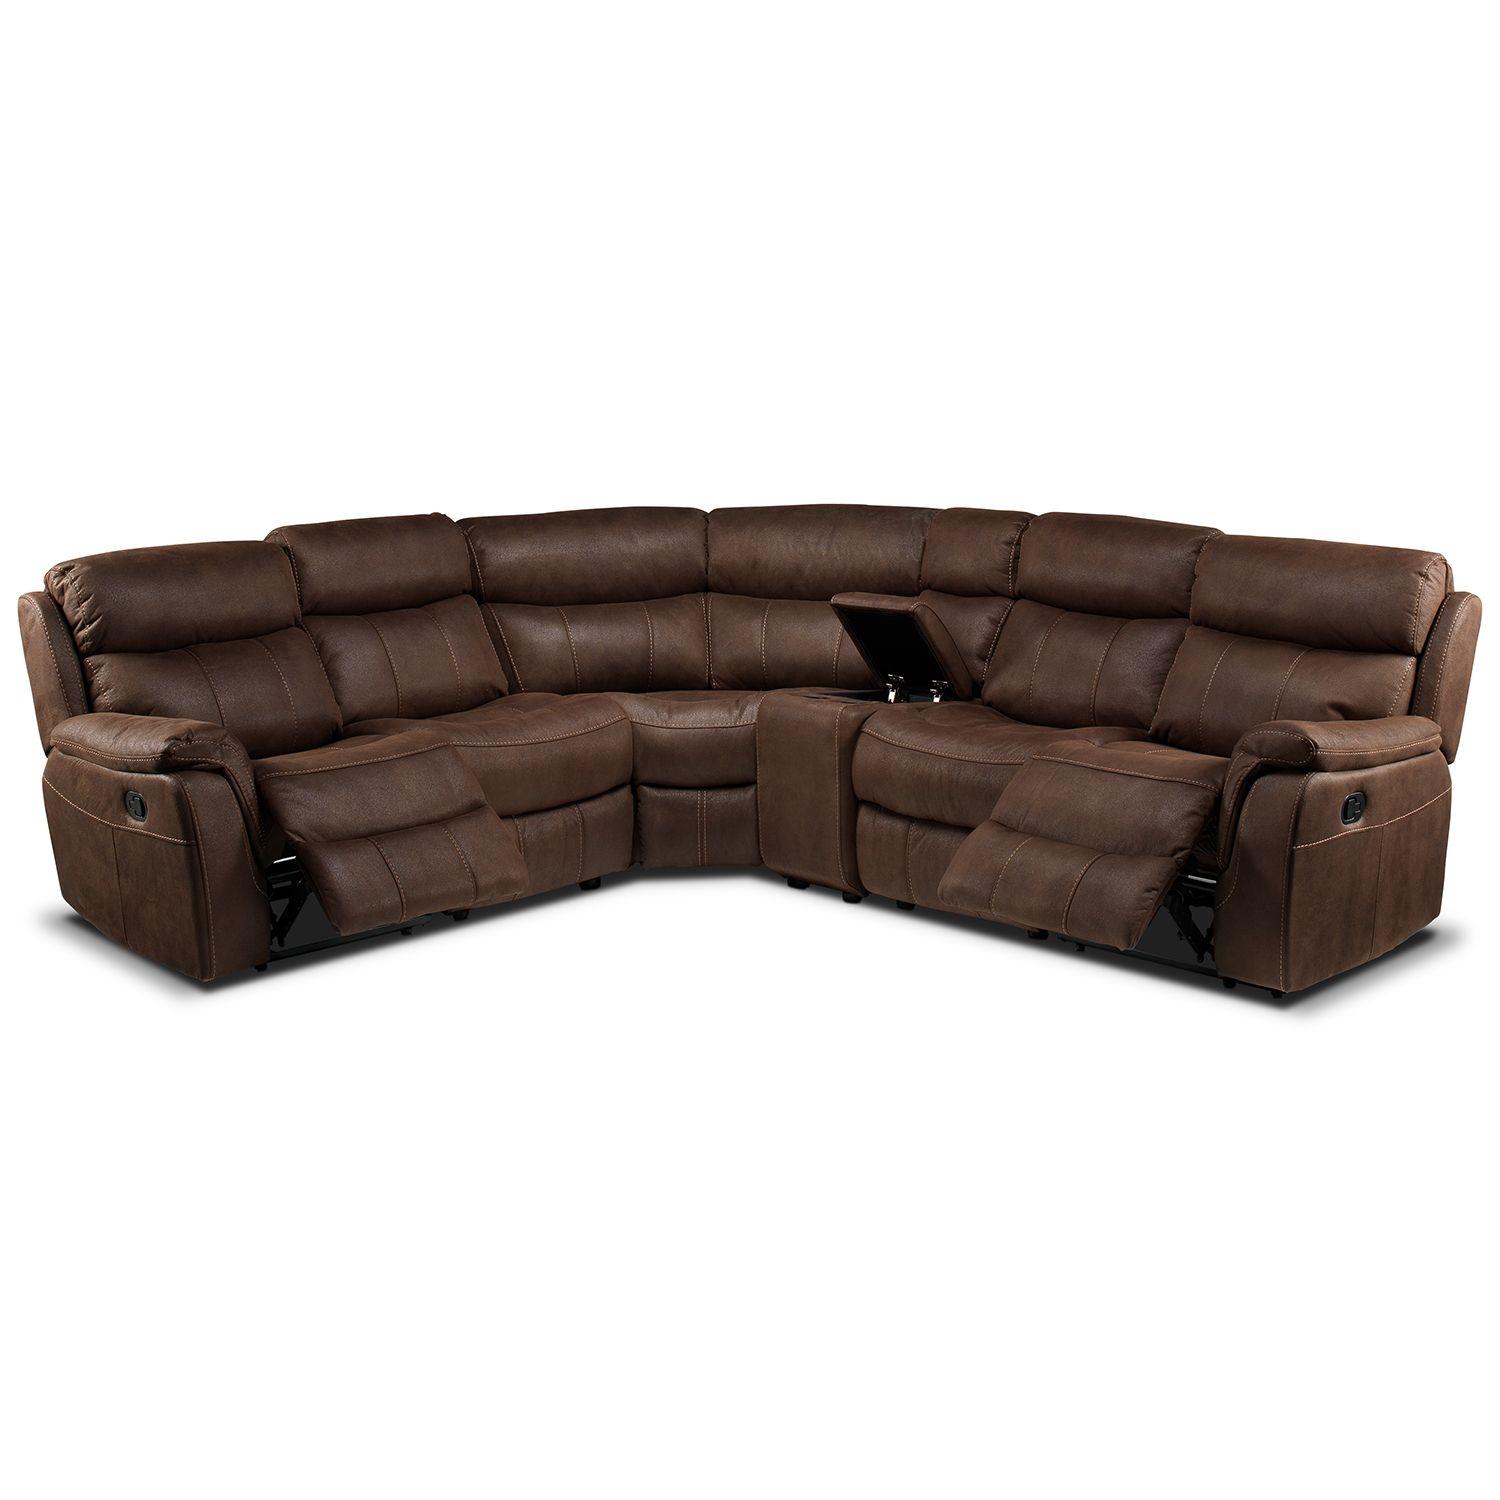 Vaquero 6 Piece Reclining Sectional Saddle Brown Leon s